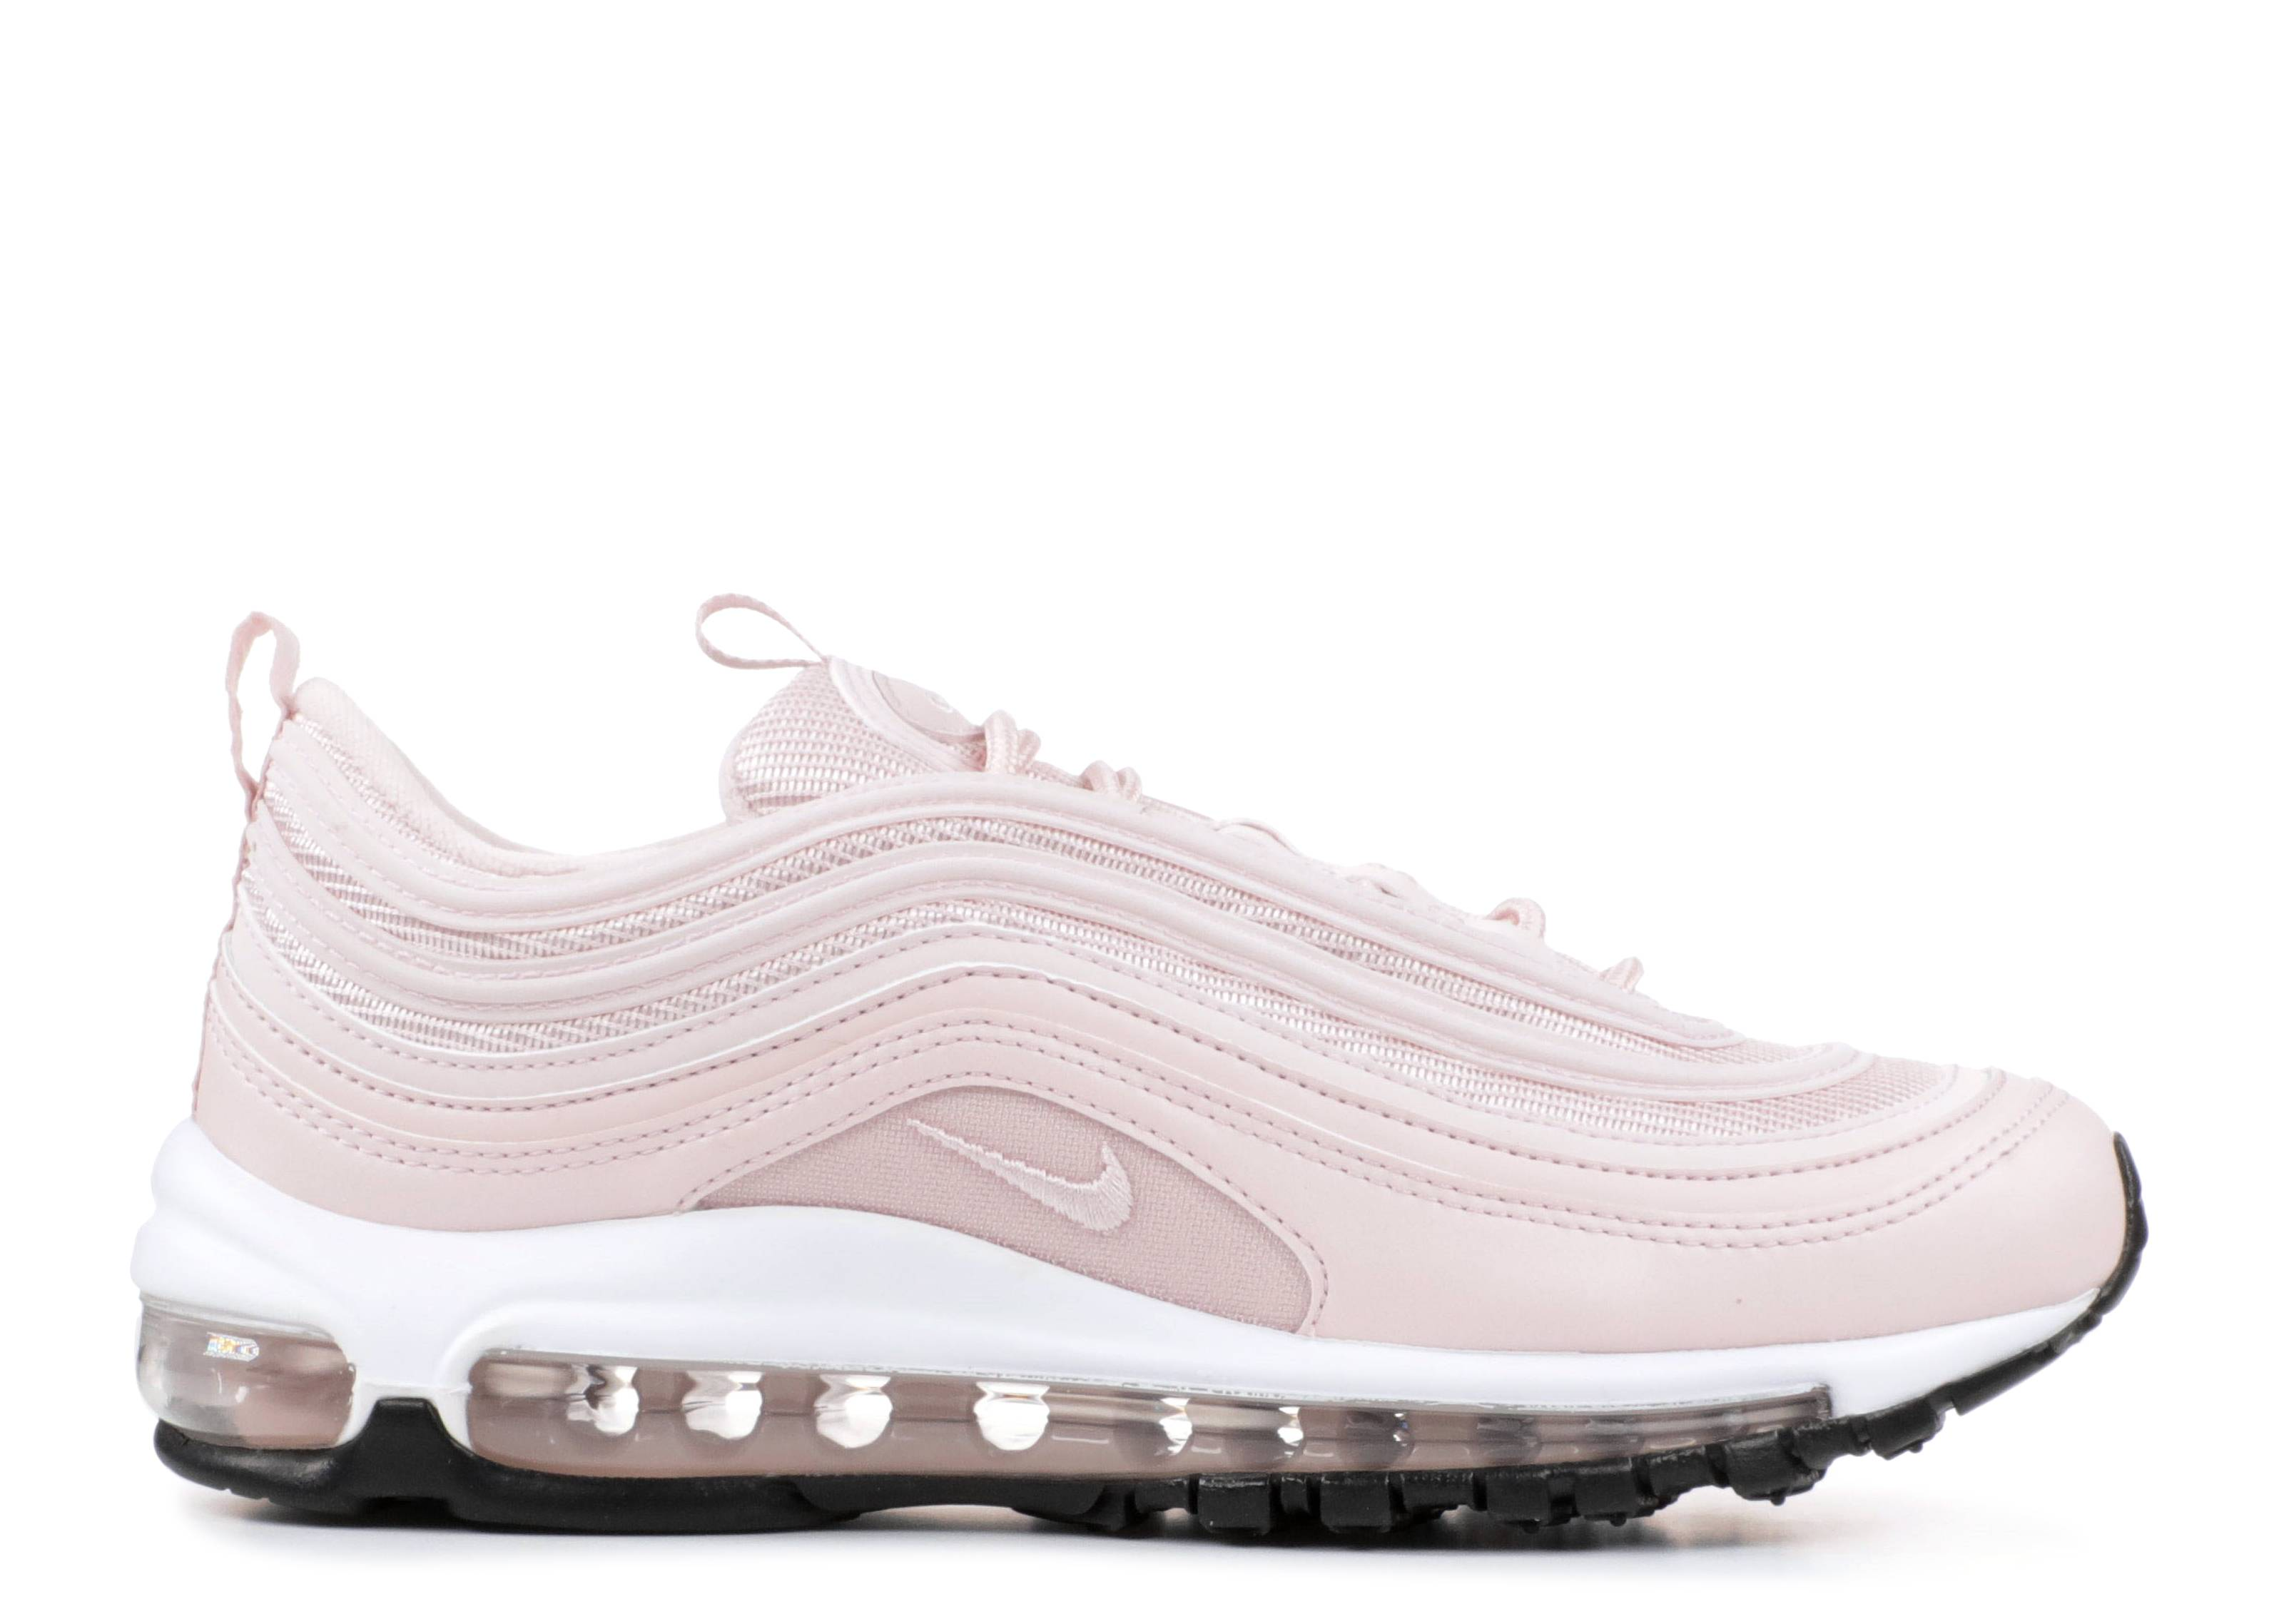 22bd49097f01 W Air Max 97 - Nike - 921733 600 - barely rose barely rose-black ...